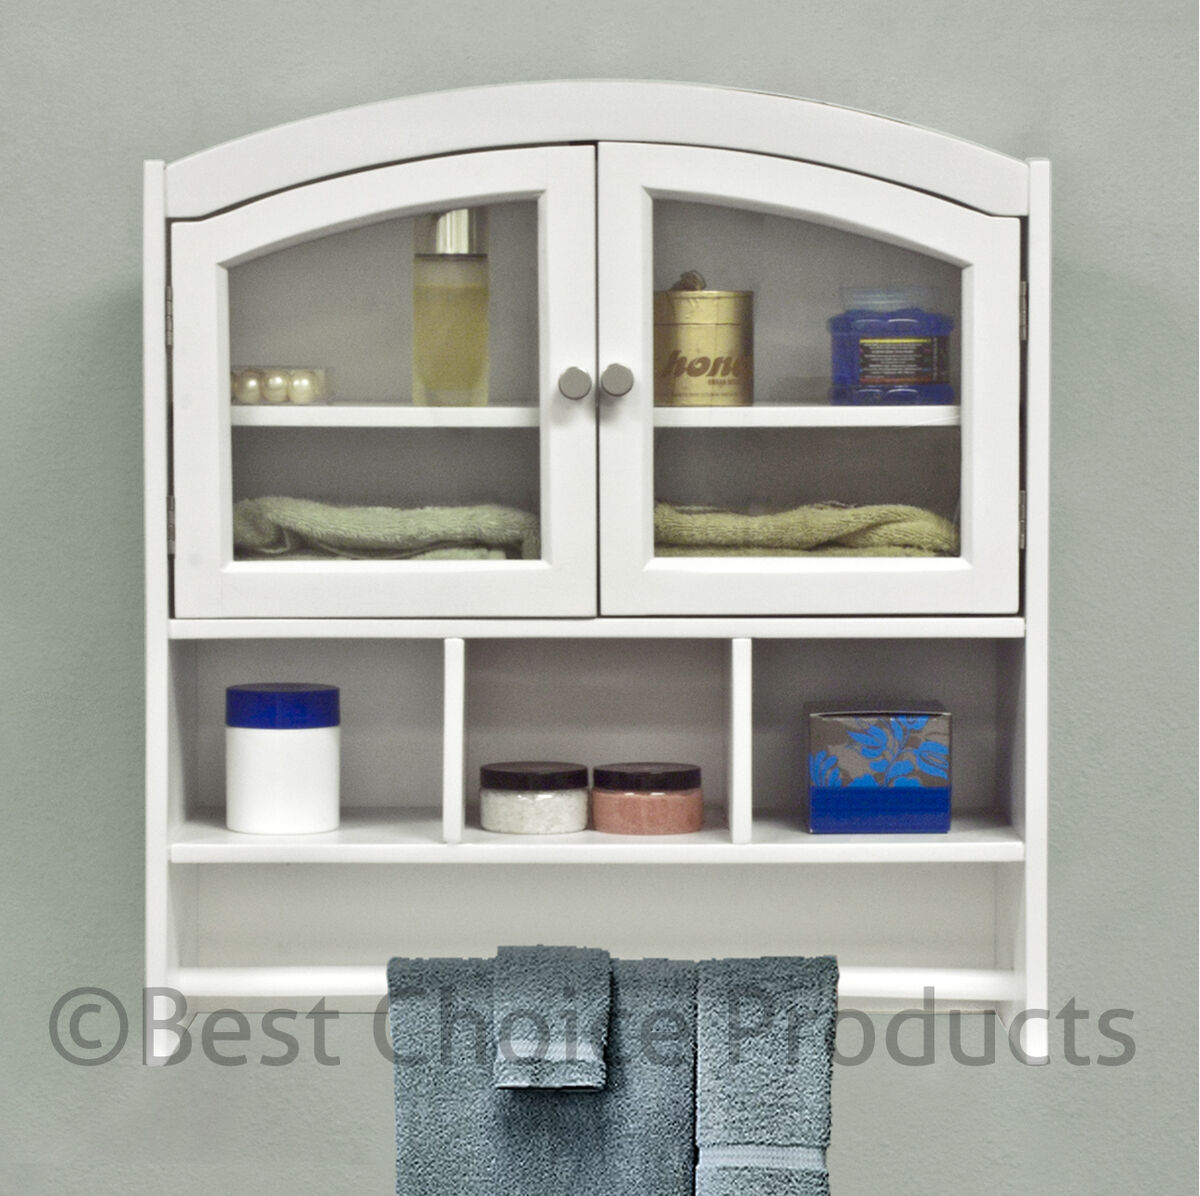 Bathroom cabinet white arch top bath wall mount storage - Wall mounted bathroom storage units ...